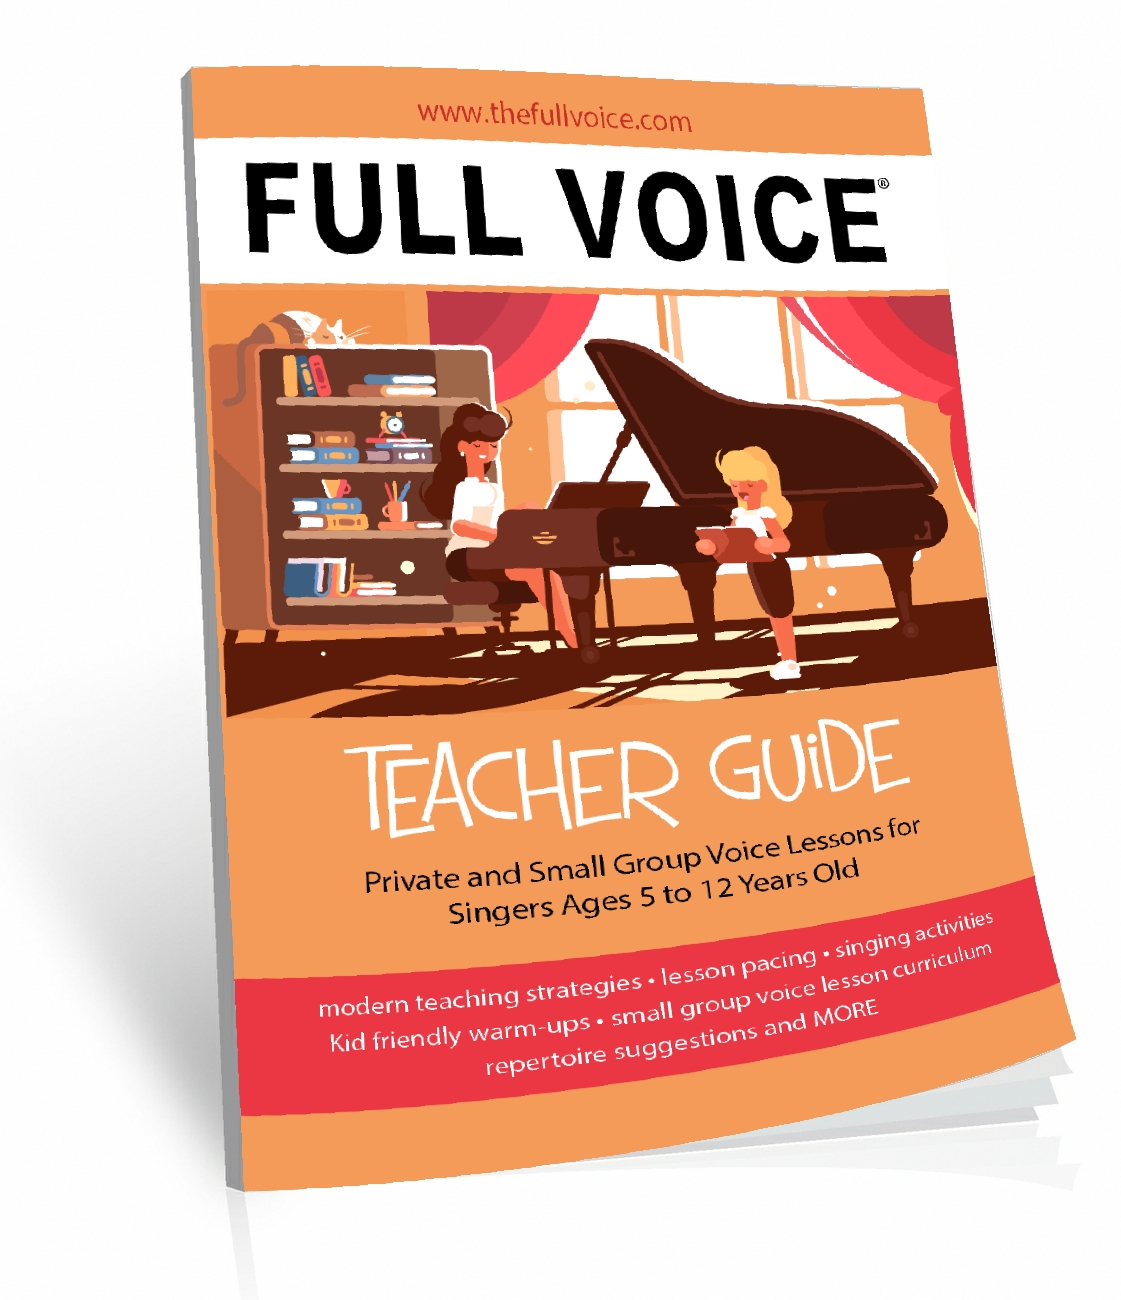 FULL VOICE Teacher Guide — The Full Voice